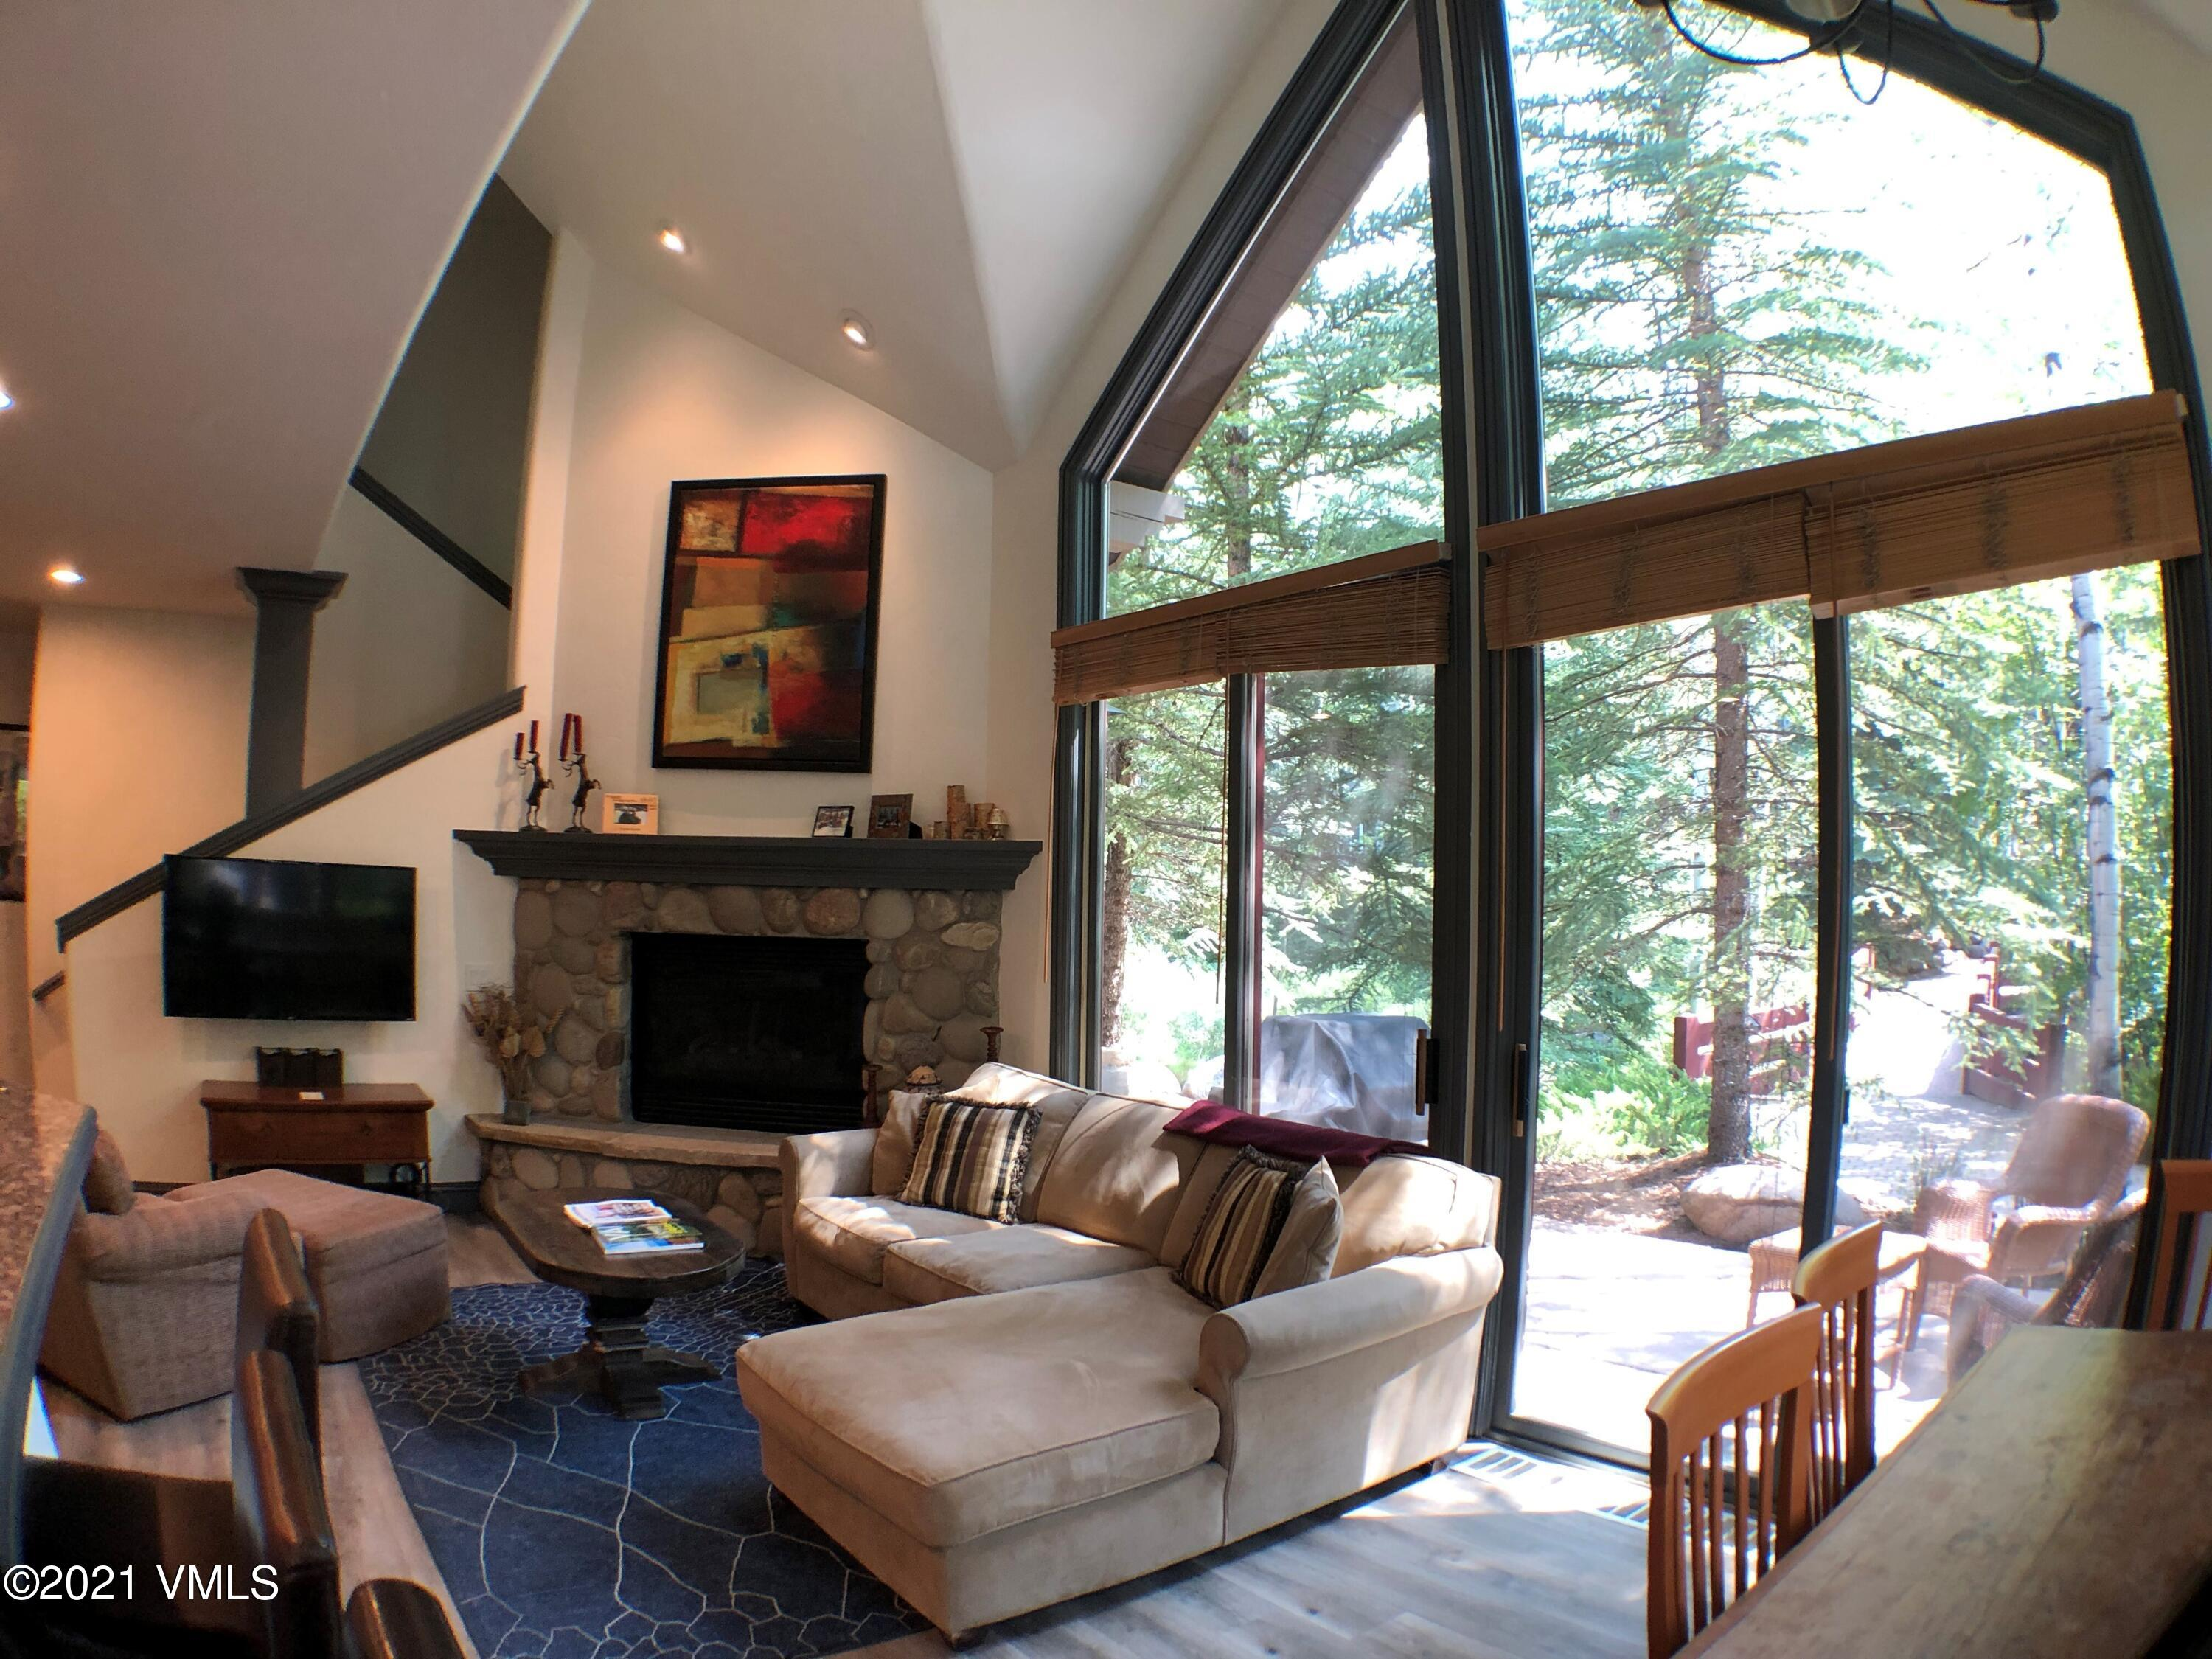 Fantastic location in the heart of Arrowhead.  This remodeled light and bright 3 bedroom 3 bathroom townhome has it all. Easy walk to ski access and the Arrowbahn ski lift, attached heated underground 1 car assigned parking with 2 storage lockers, main floor master and vaulted ceilings.  Short walk to the Alpine Club and all of its amenities.  Don't miss out!